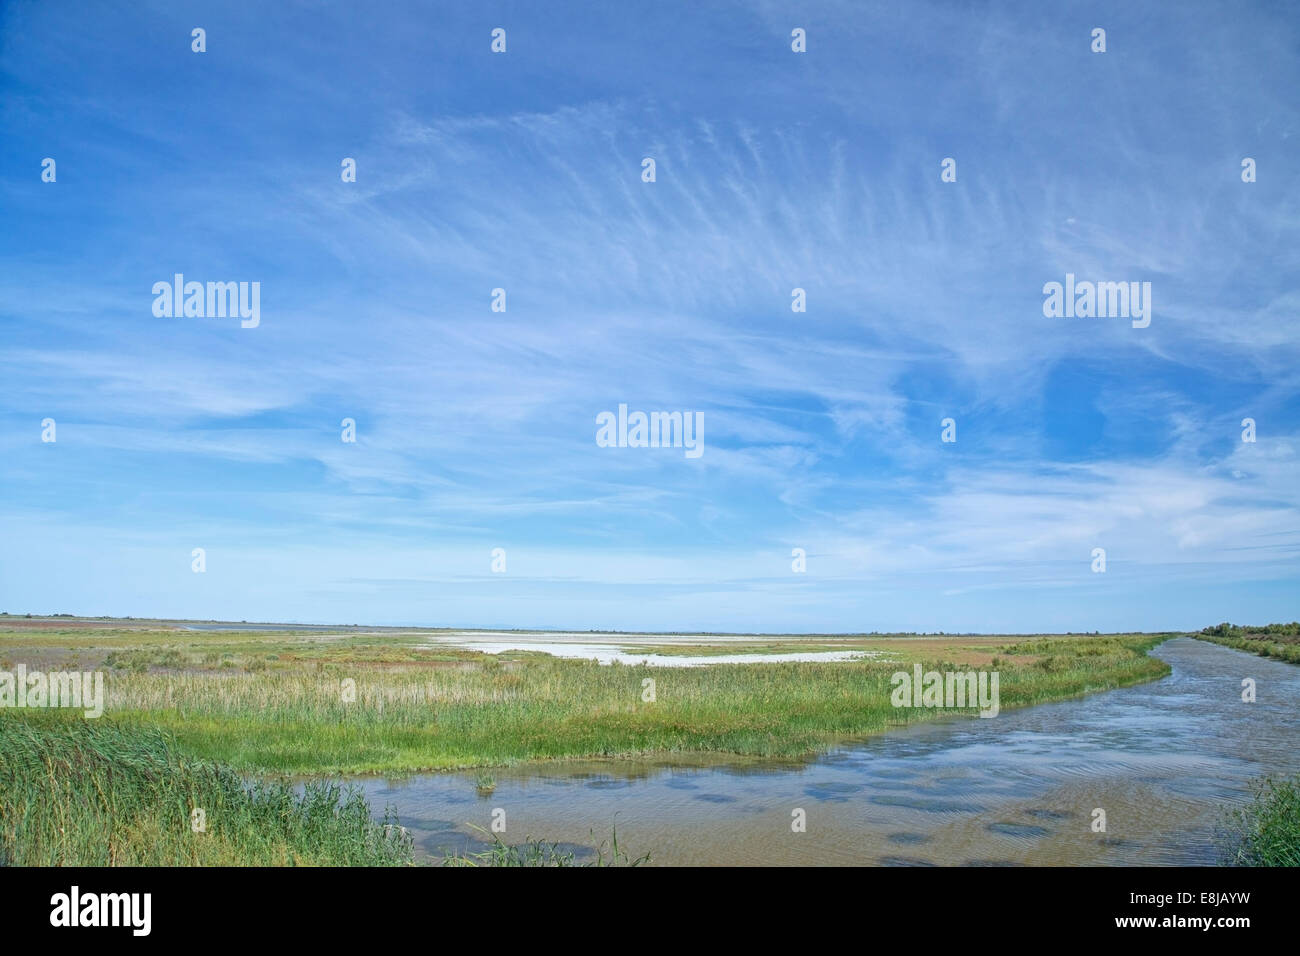 view over the Camargue natural park, France showing habitat. - Stock Image